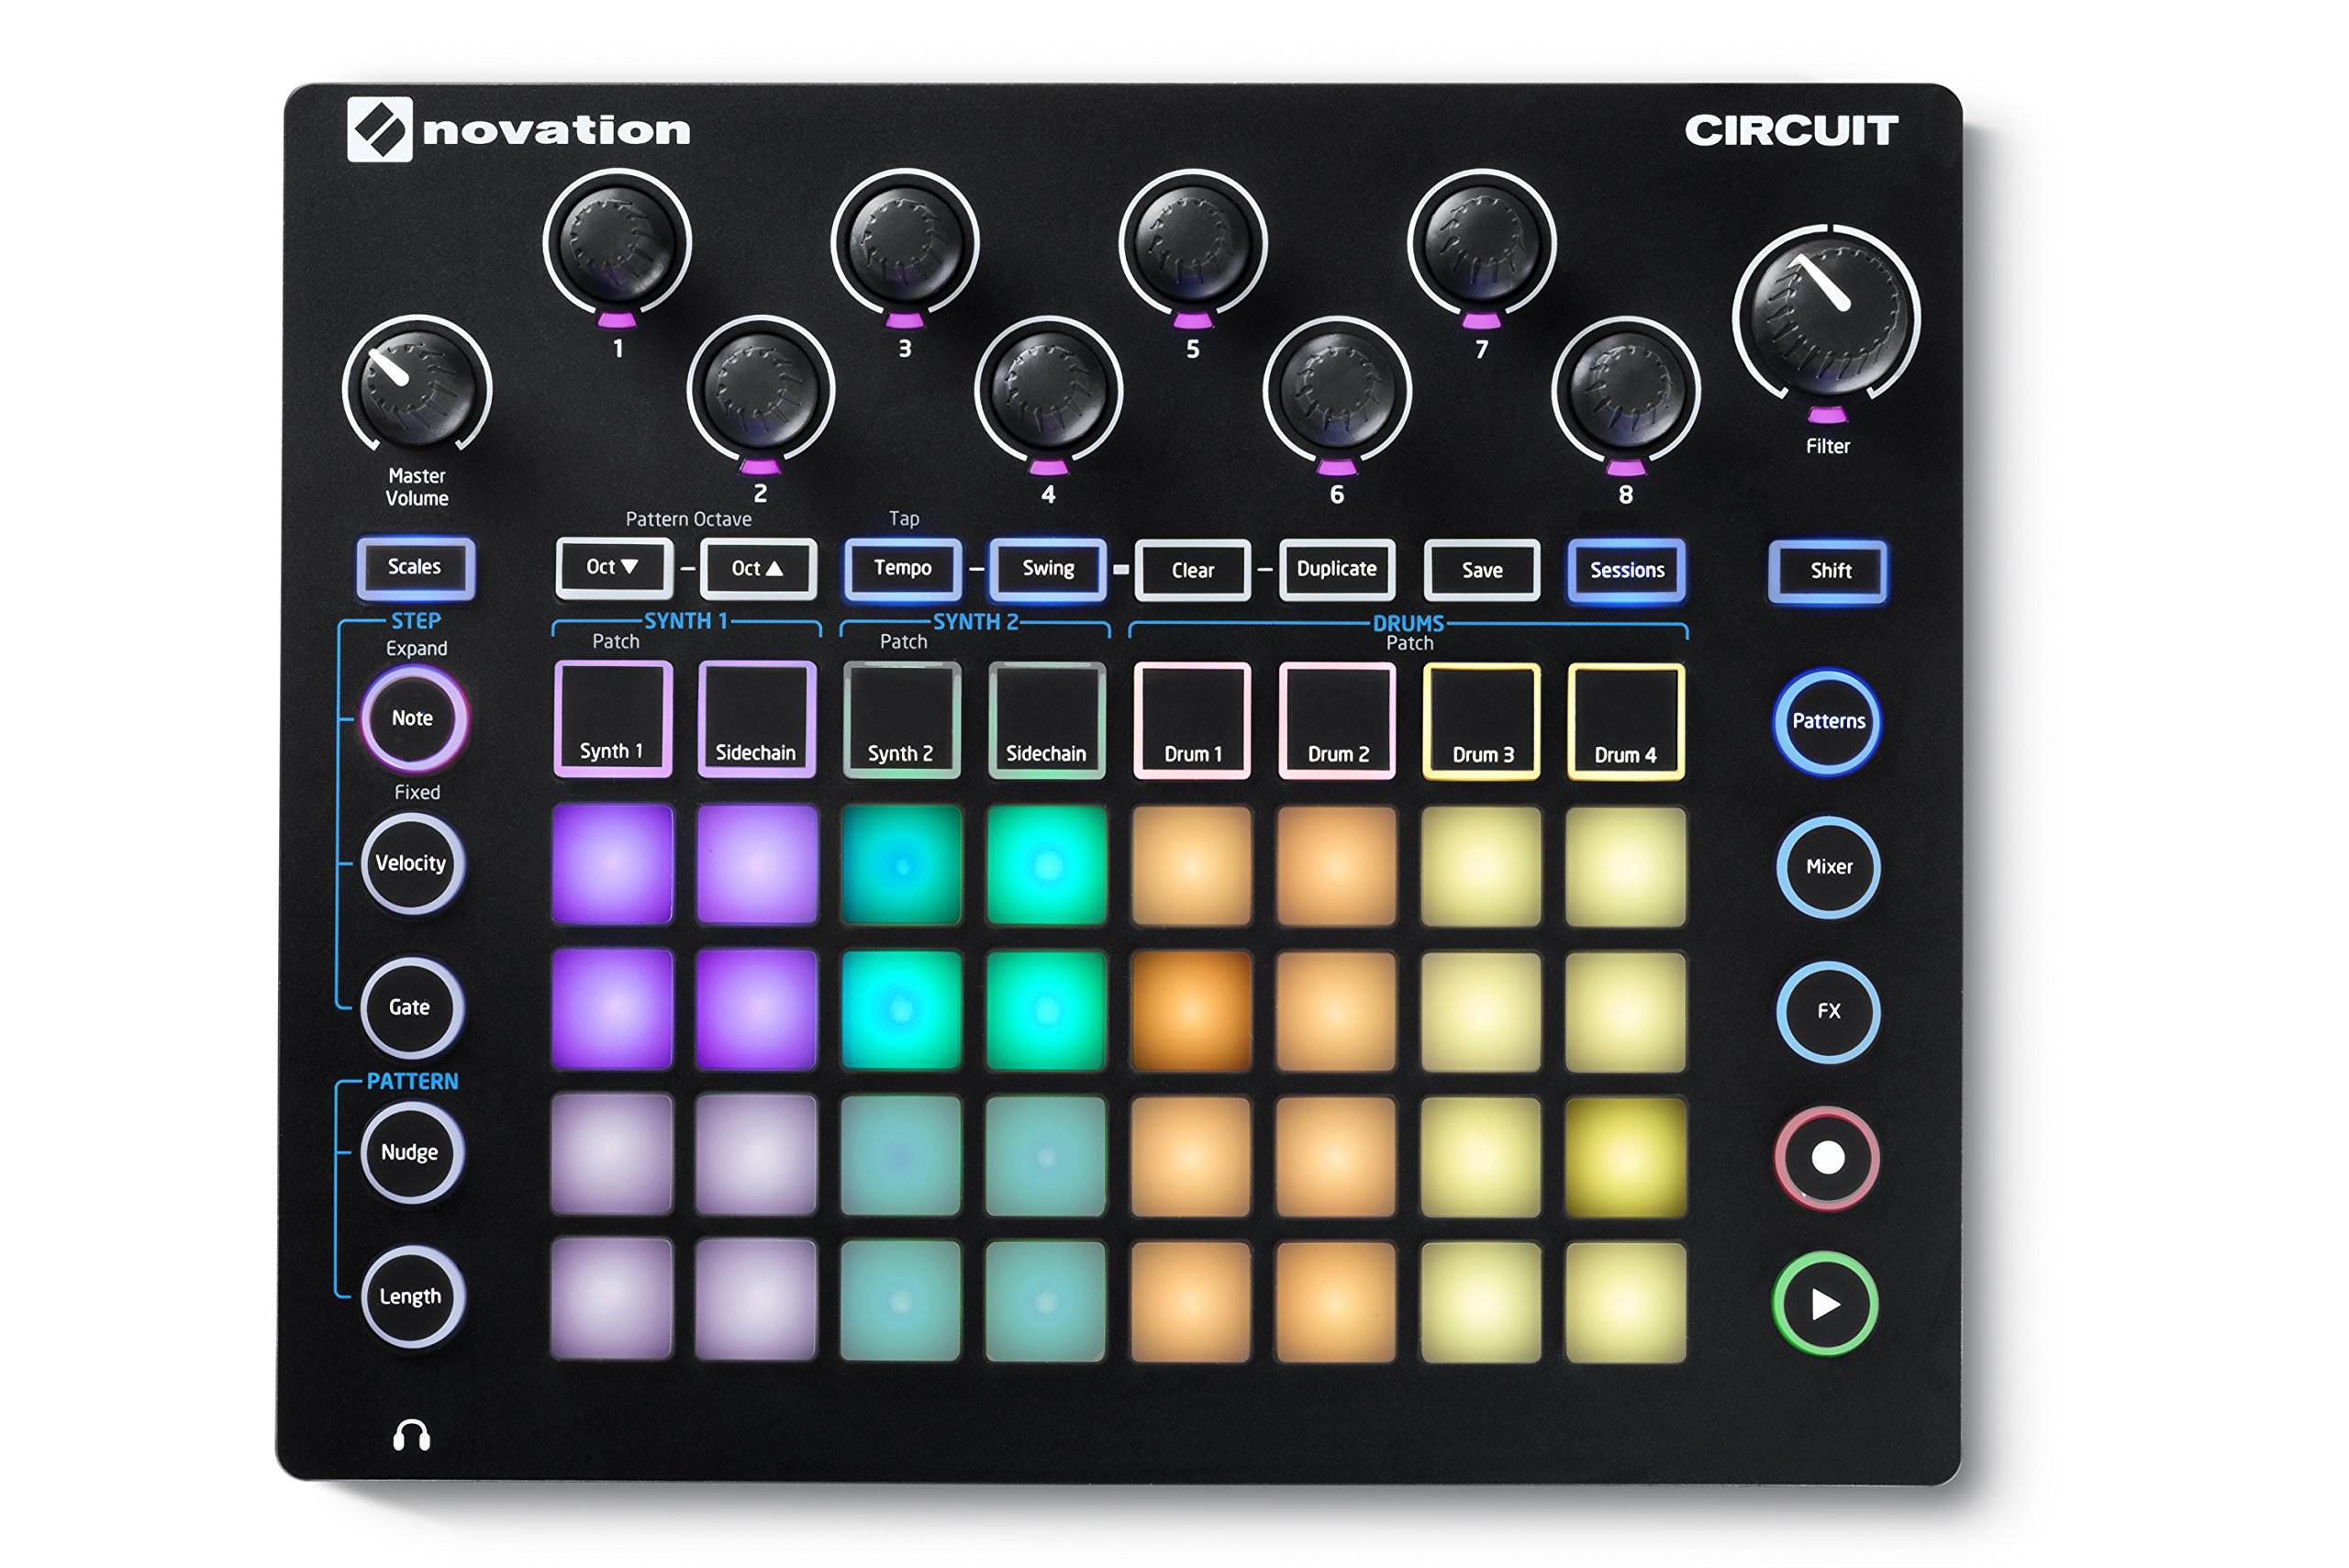 Three Music Box Circuit Ideals Electronic Projects Circuits Sound Versatile Using Ic M3481 Amazoncom Novation Groove W Sample Import 2 Part Synth 4 Drum Machine And Sequencer Musical Instruments